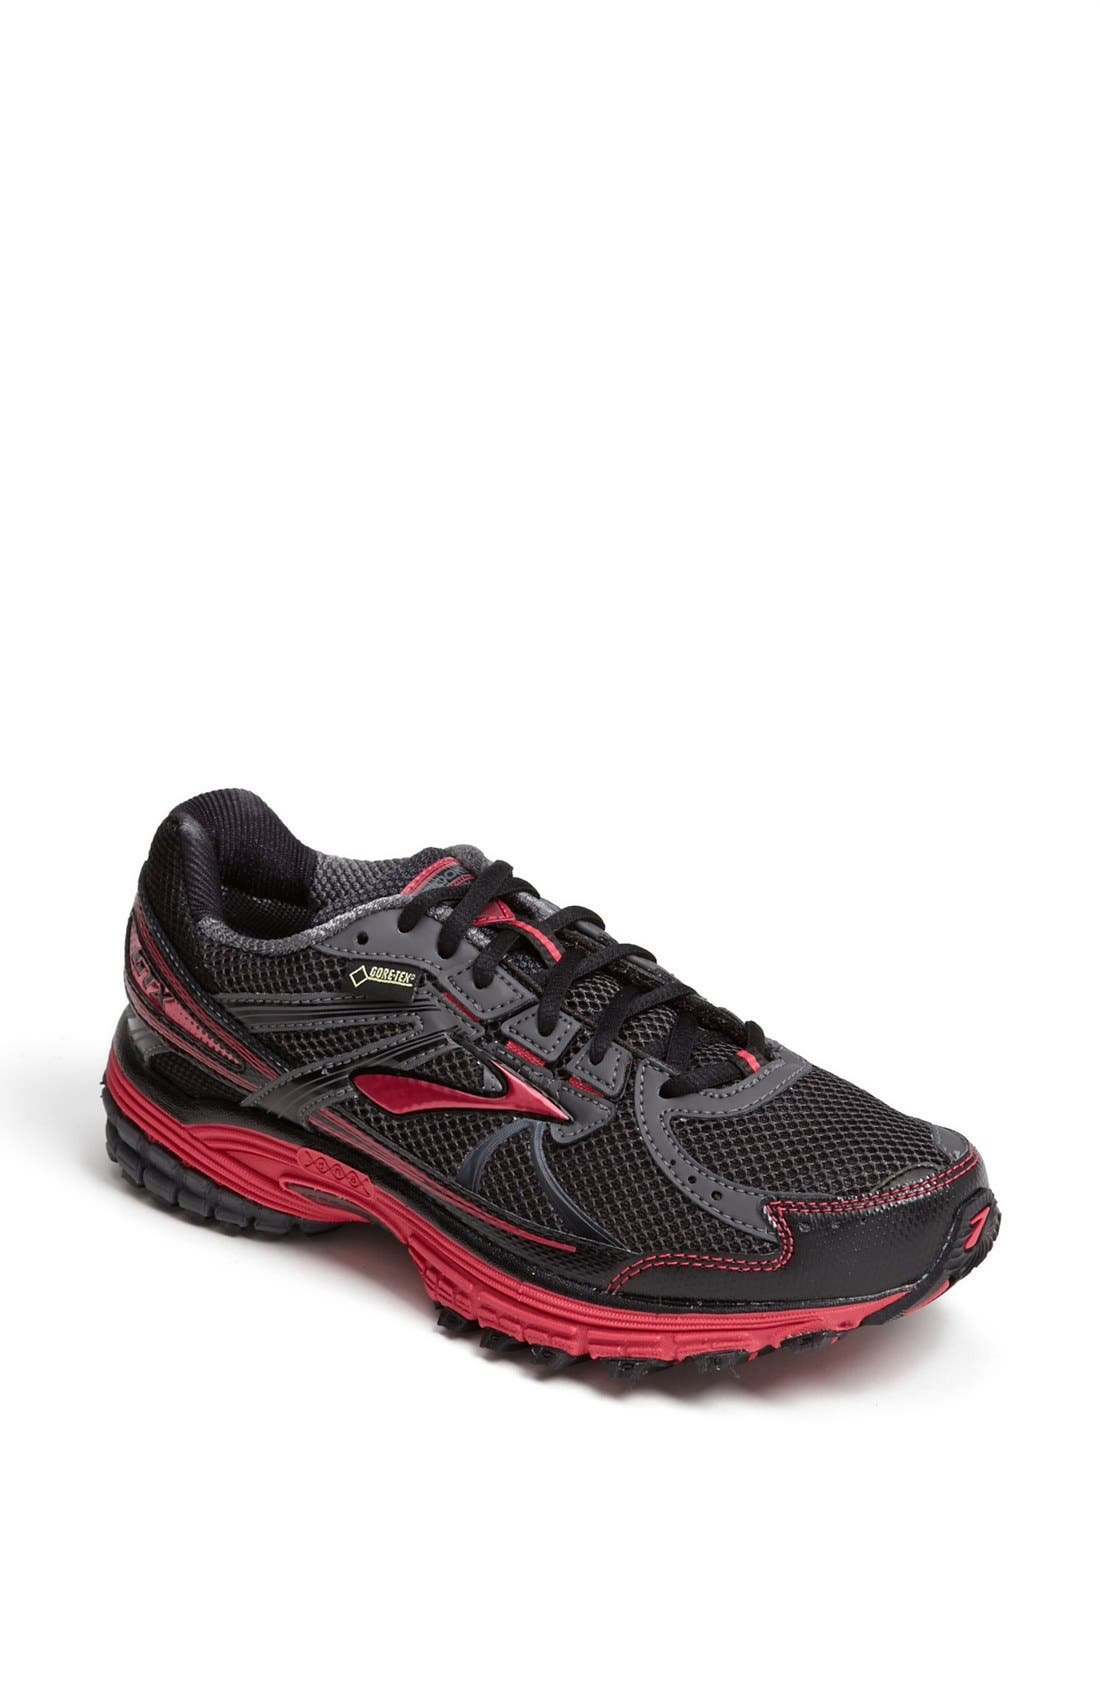 Alternate Image 1 Selected - Brooks 'Adrenaline ASR 10 GTX' Trail Running Shoe (Women)